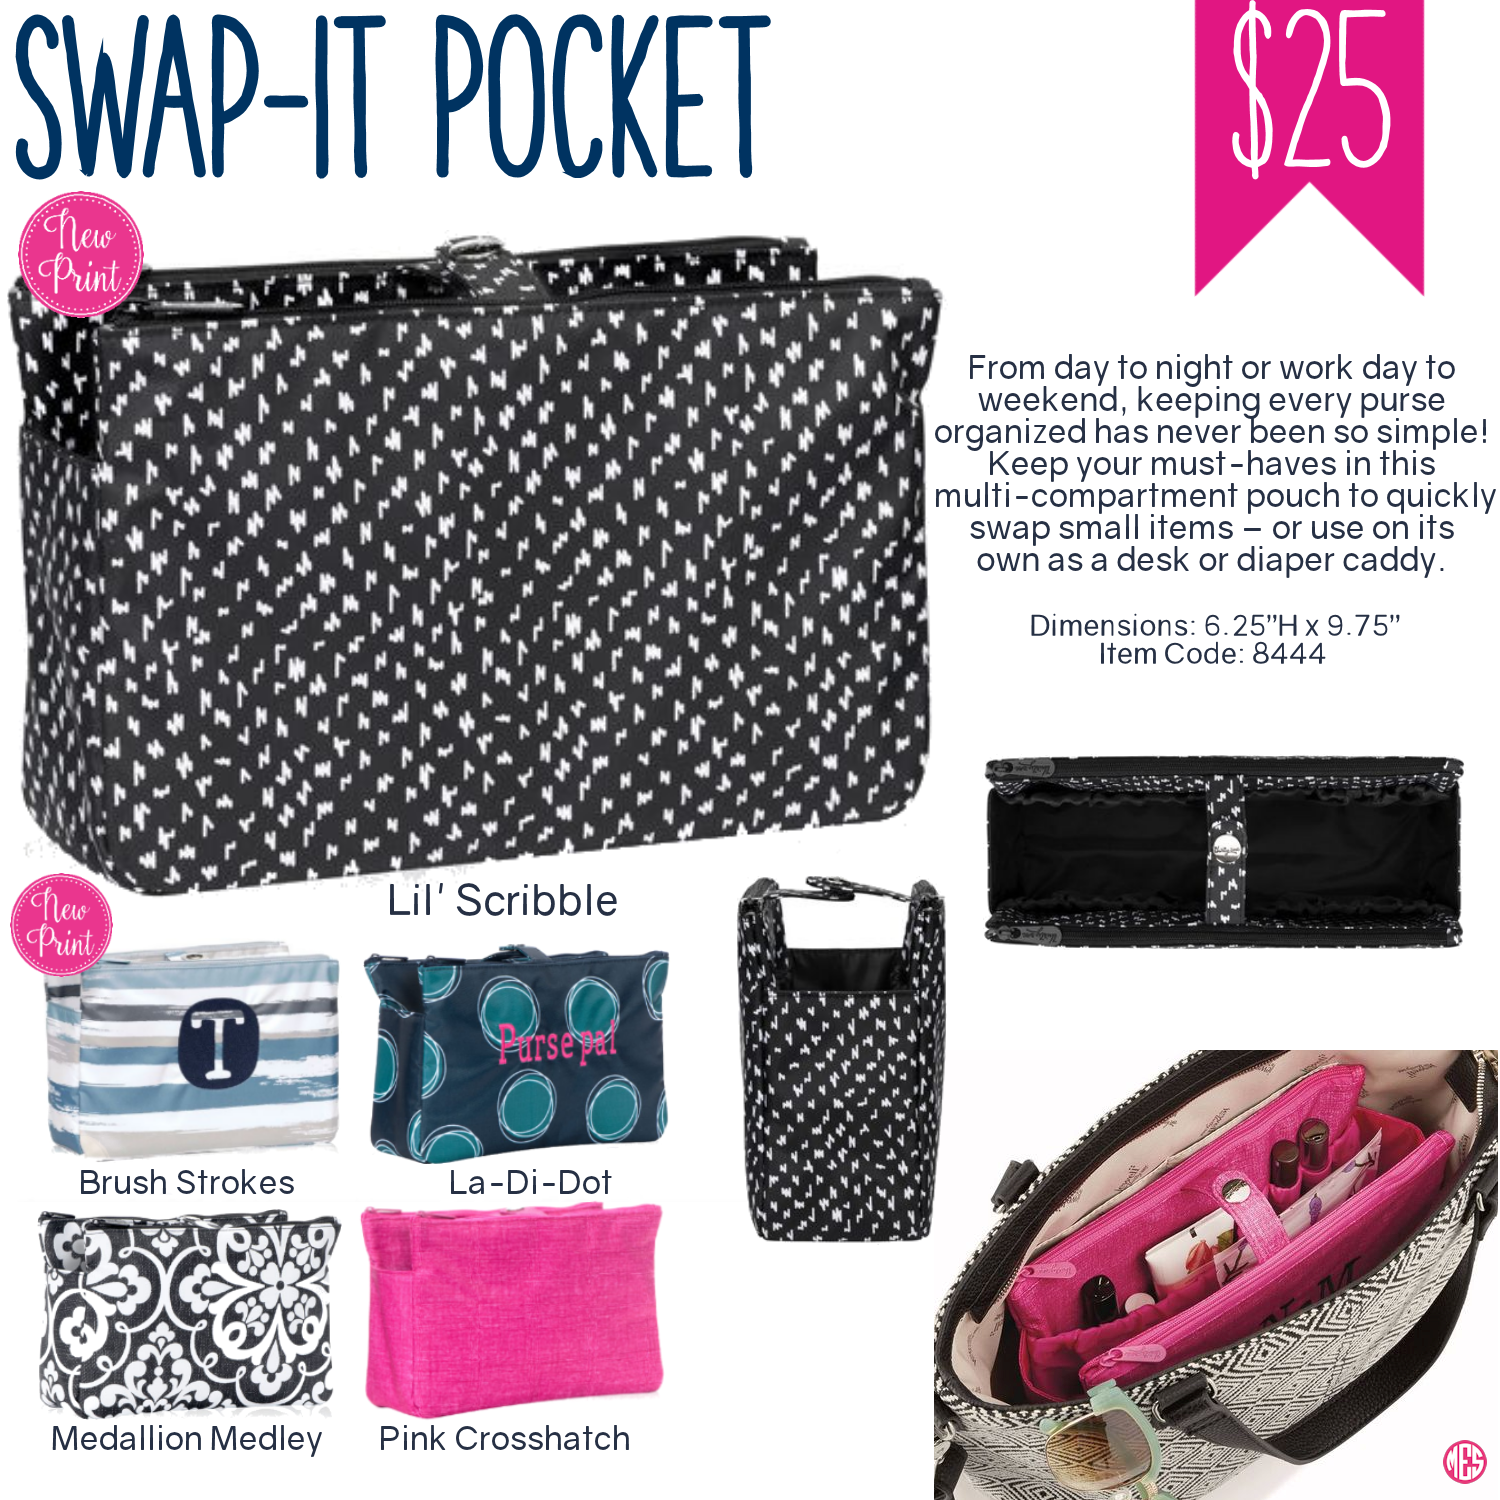 Thirty one november customer special 2014 - Thirty One Swap It Pocket